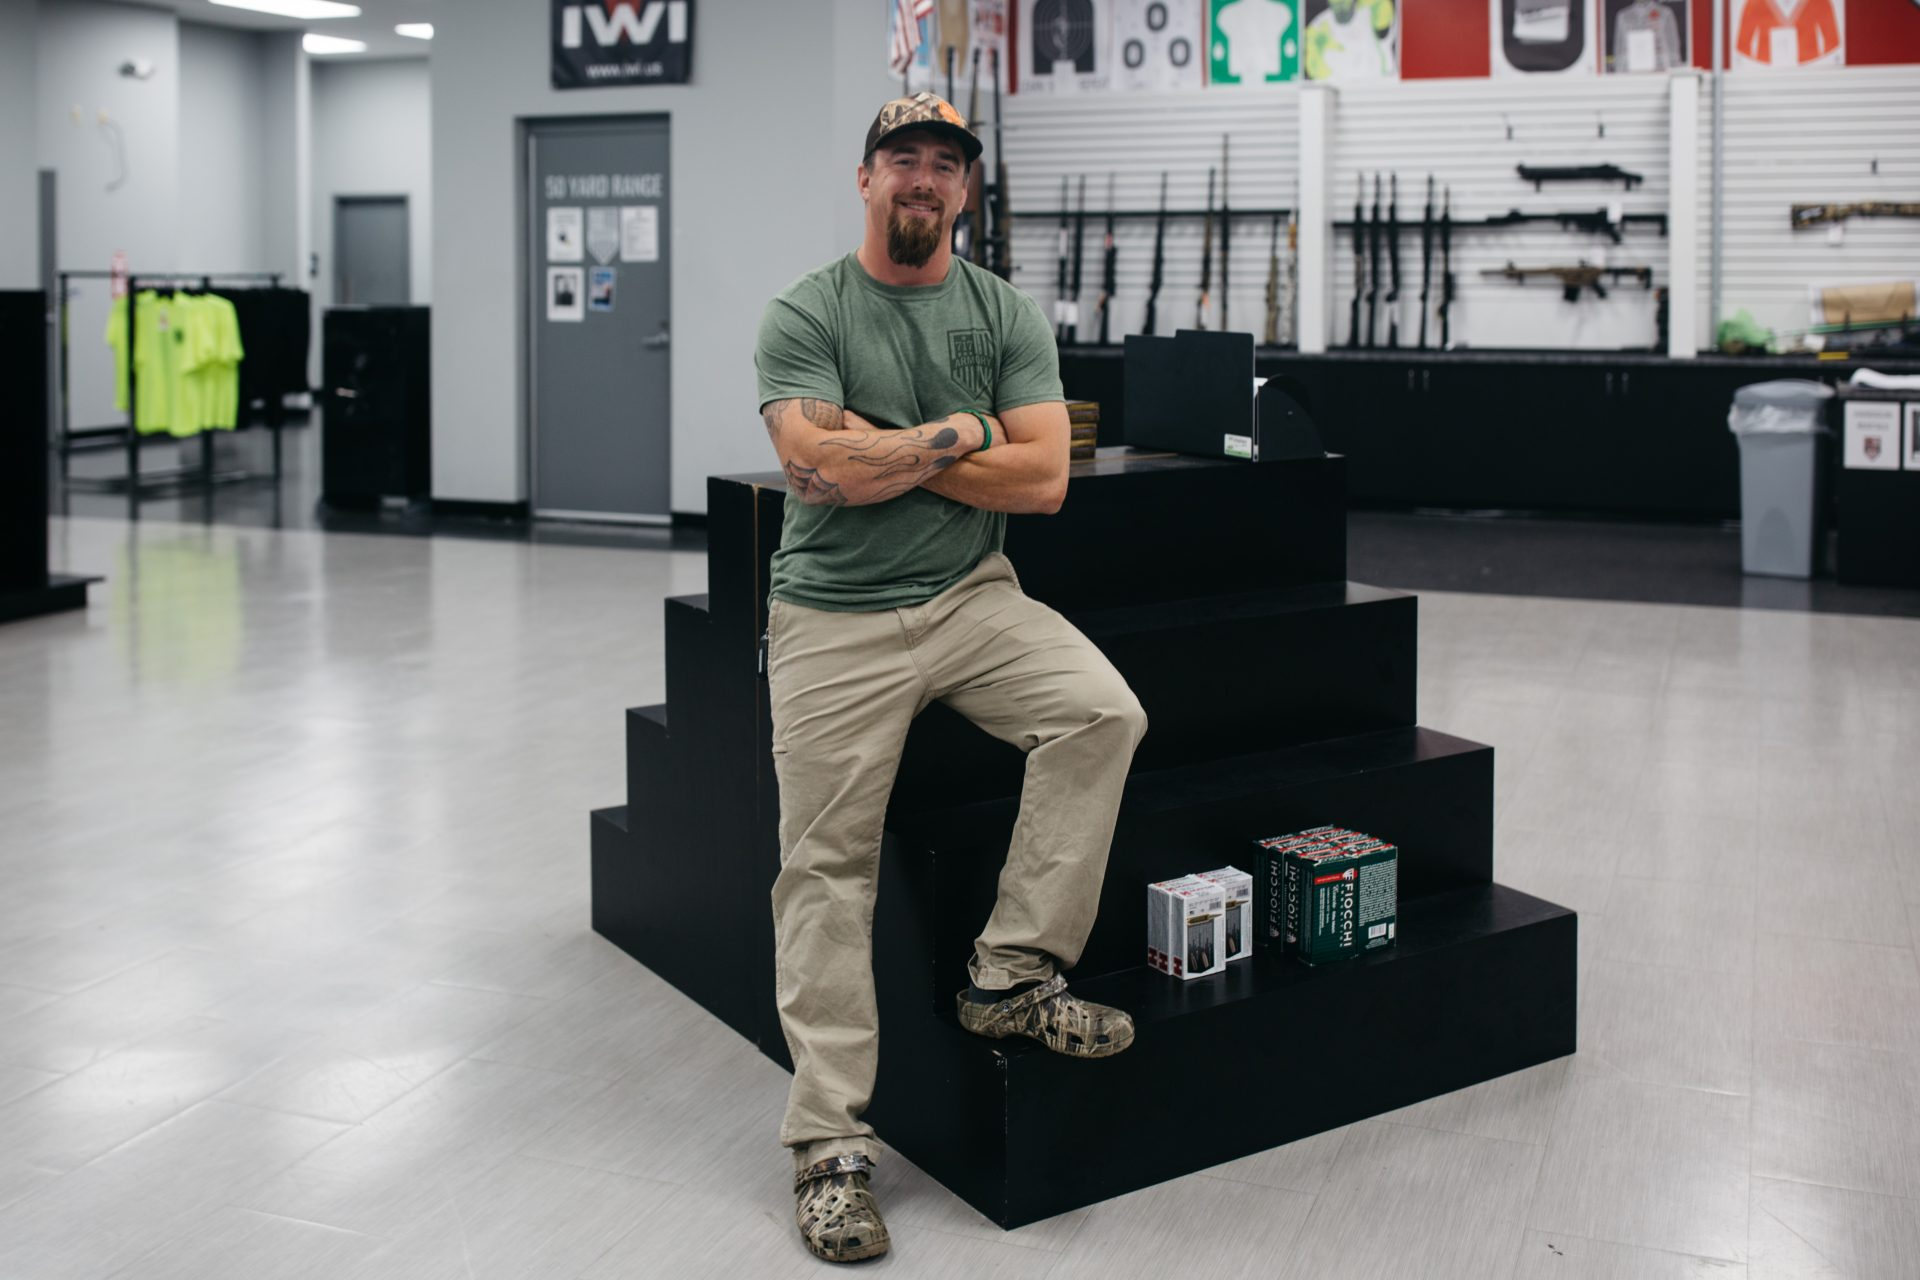 Patrick Connaghan, owner at 717 Armory in Harrisburg, Pa., leans on a nearly empty shelf of ammunition on Sept. 3, 2020. He said that ammunition and gun sales started surging on March 18, right after Gov. Tom Wolf declared a state of emergency.